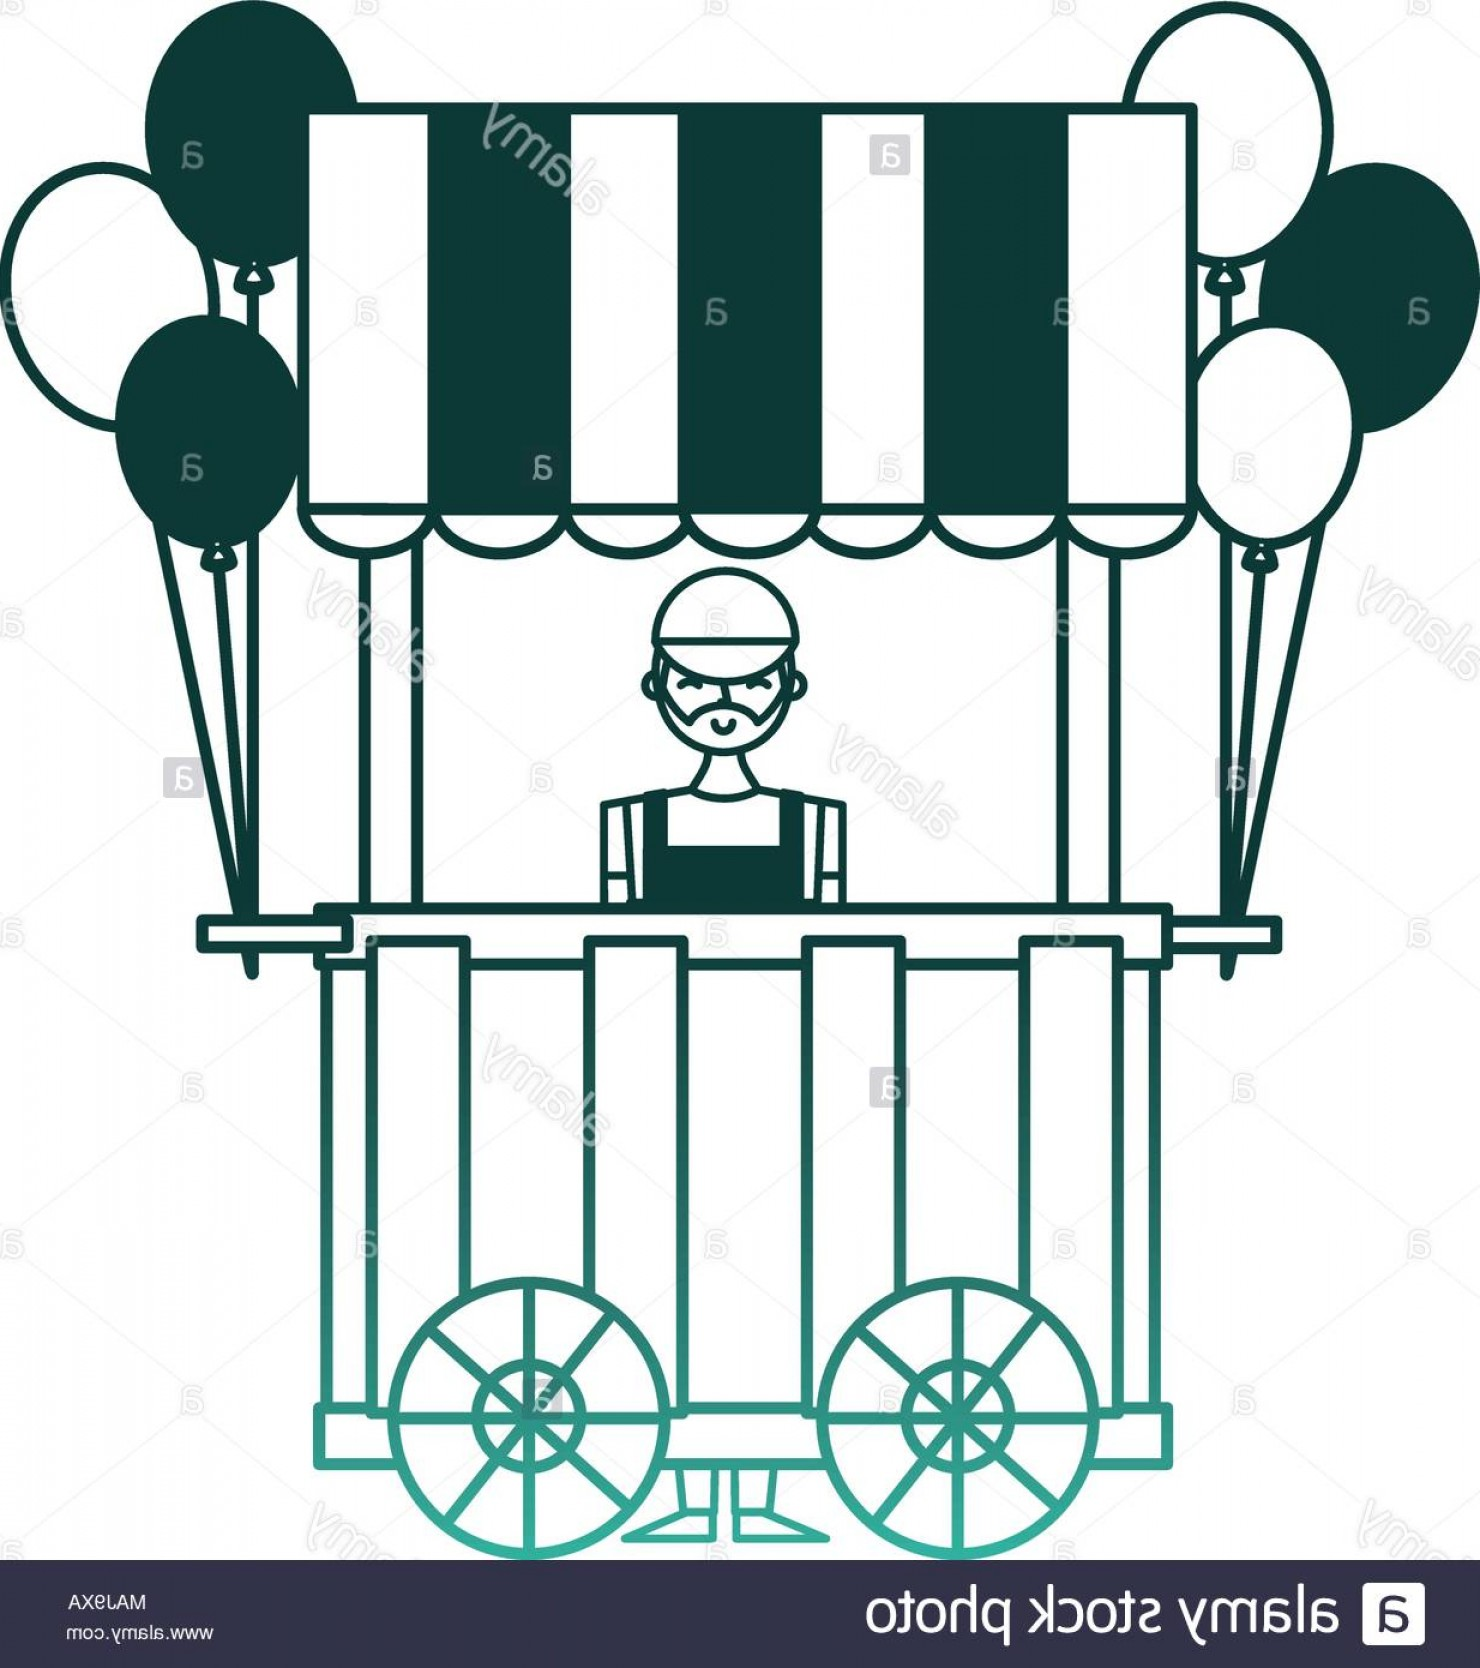 Salesman Vector: Circus Pumps Air Shop With Salesman Vector Illustration Design Image